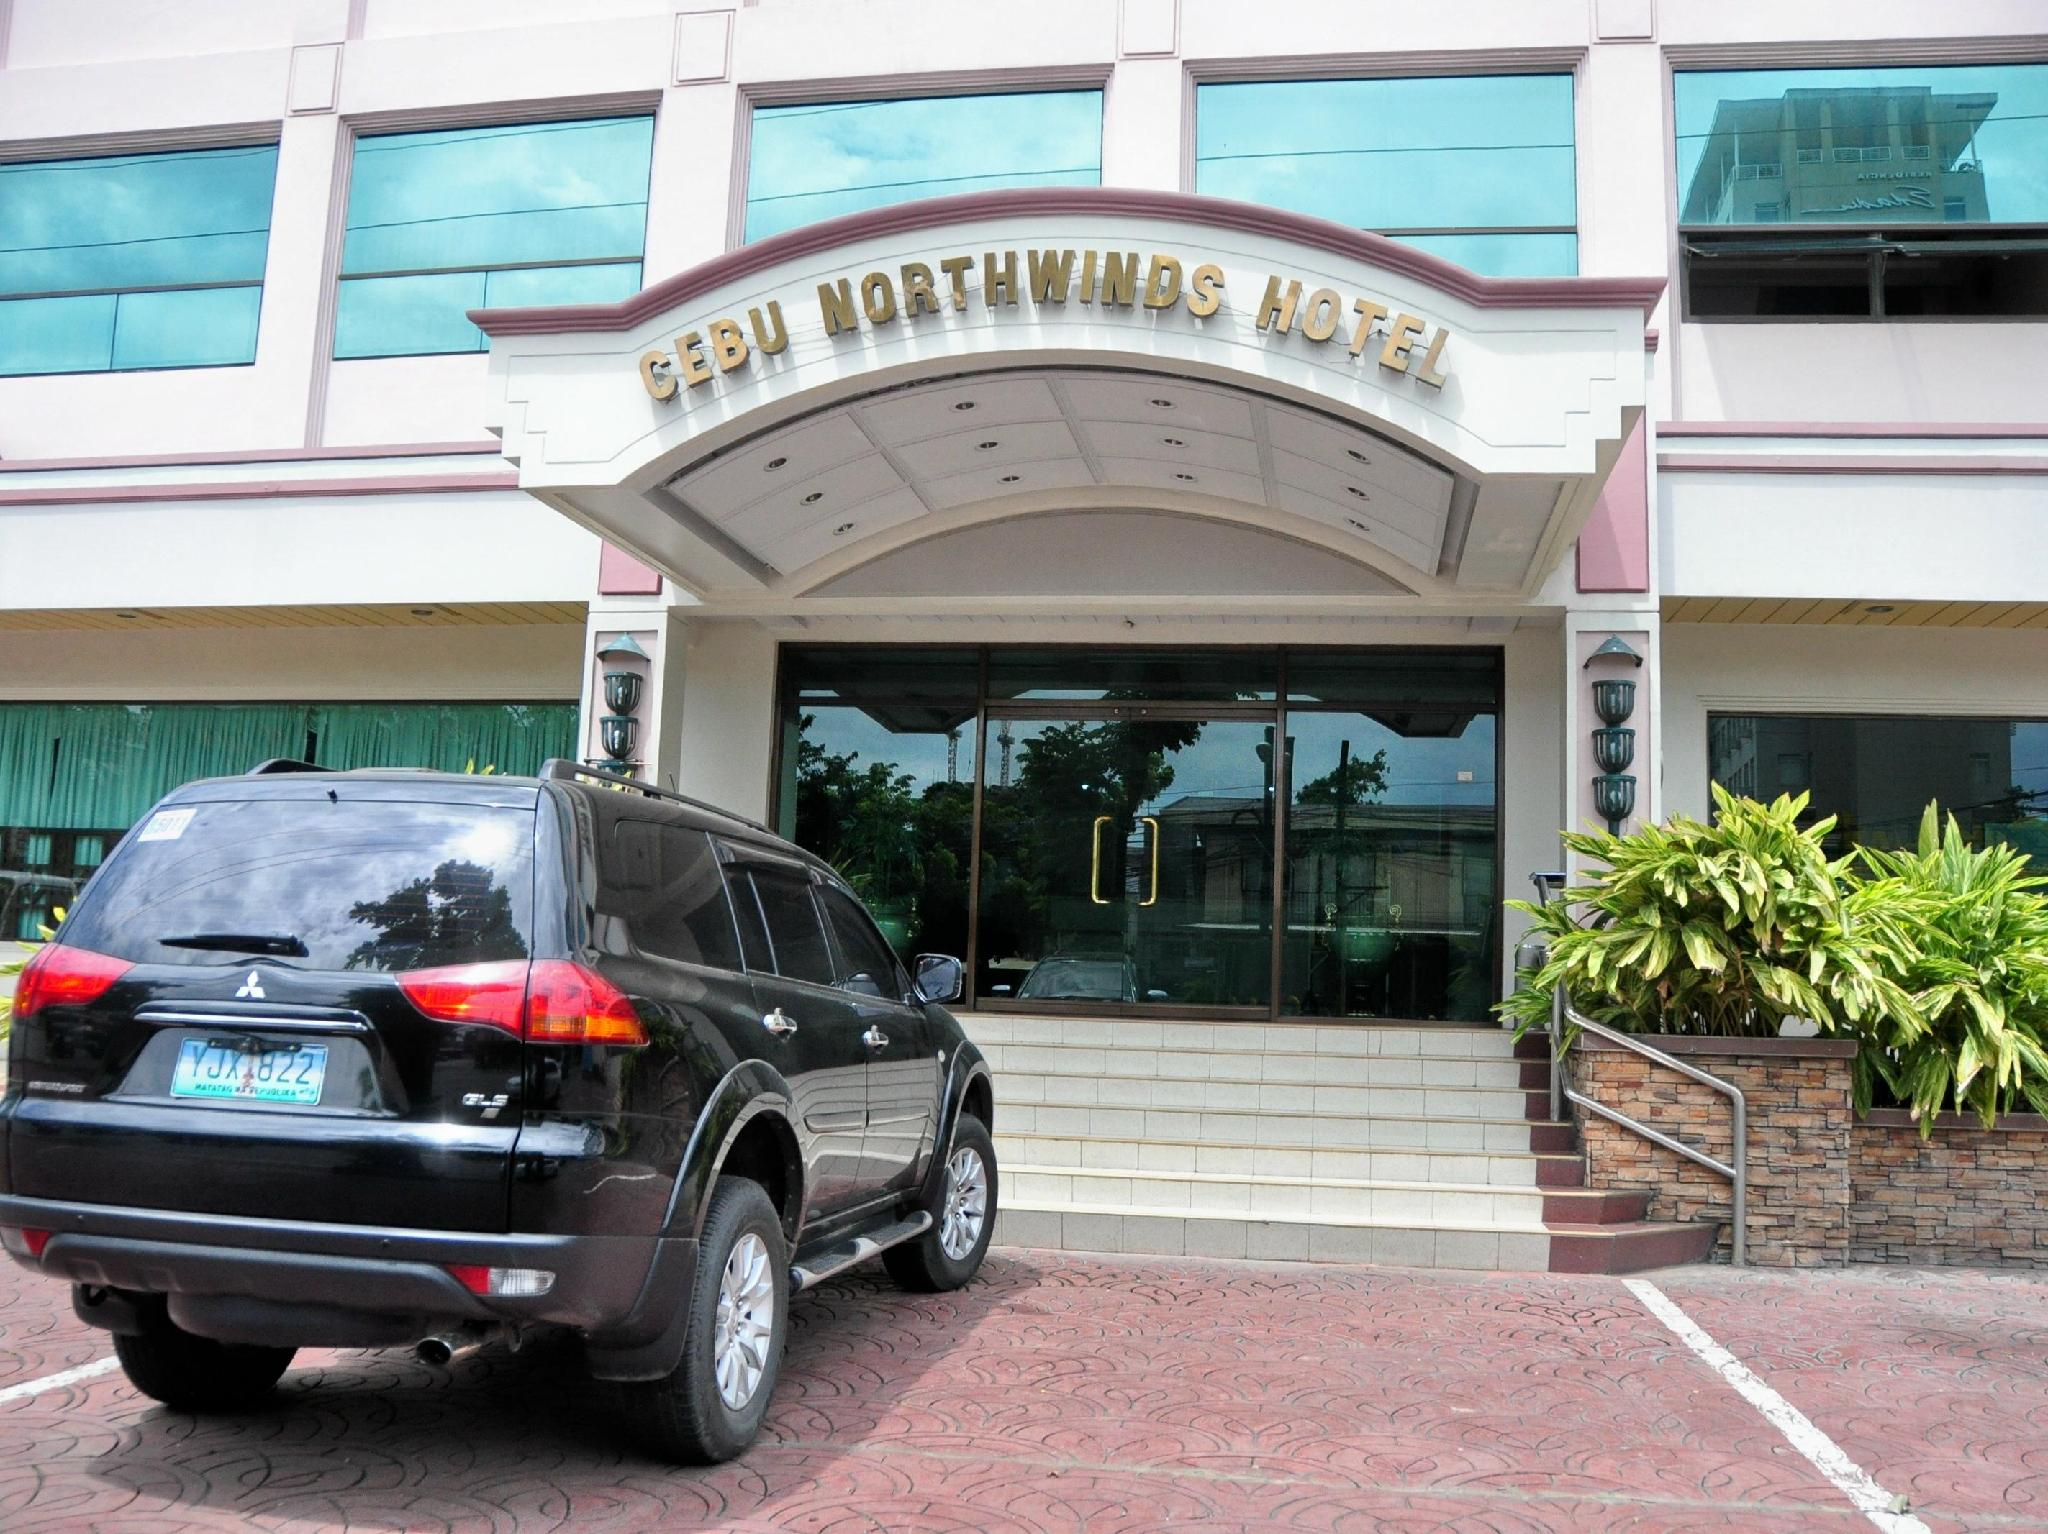 Cebu Northwinds Hotel Sebu